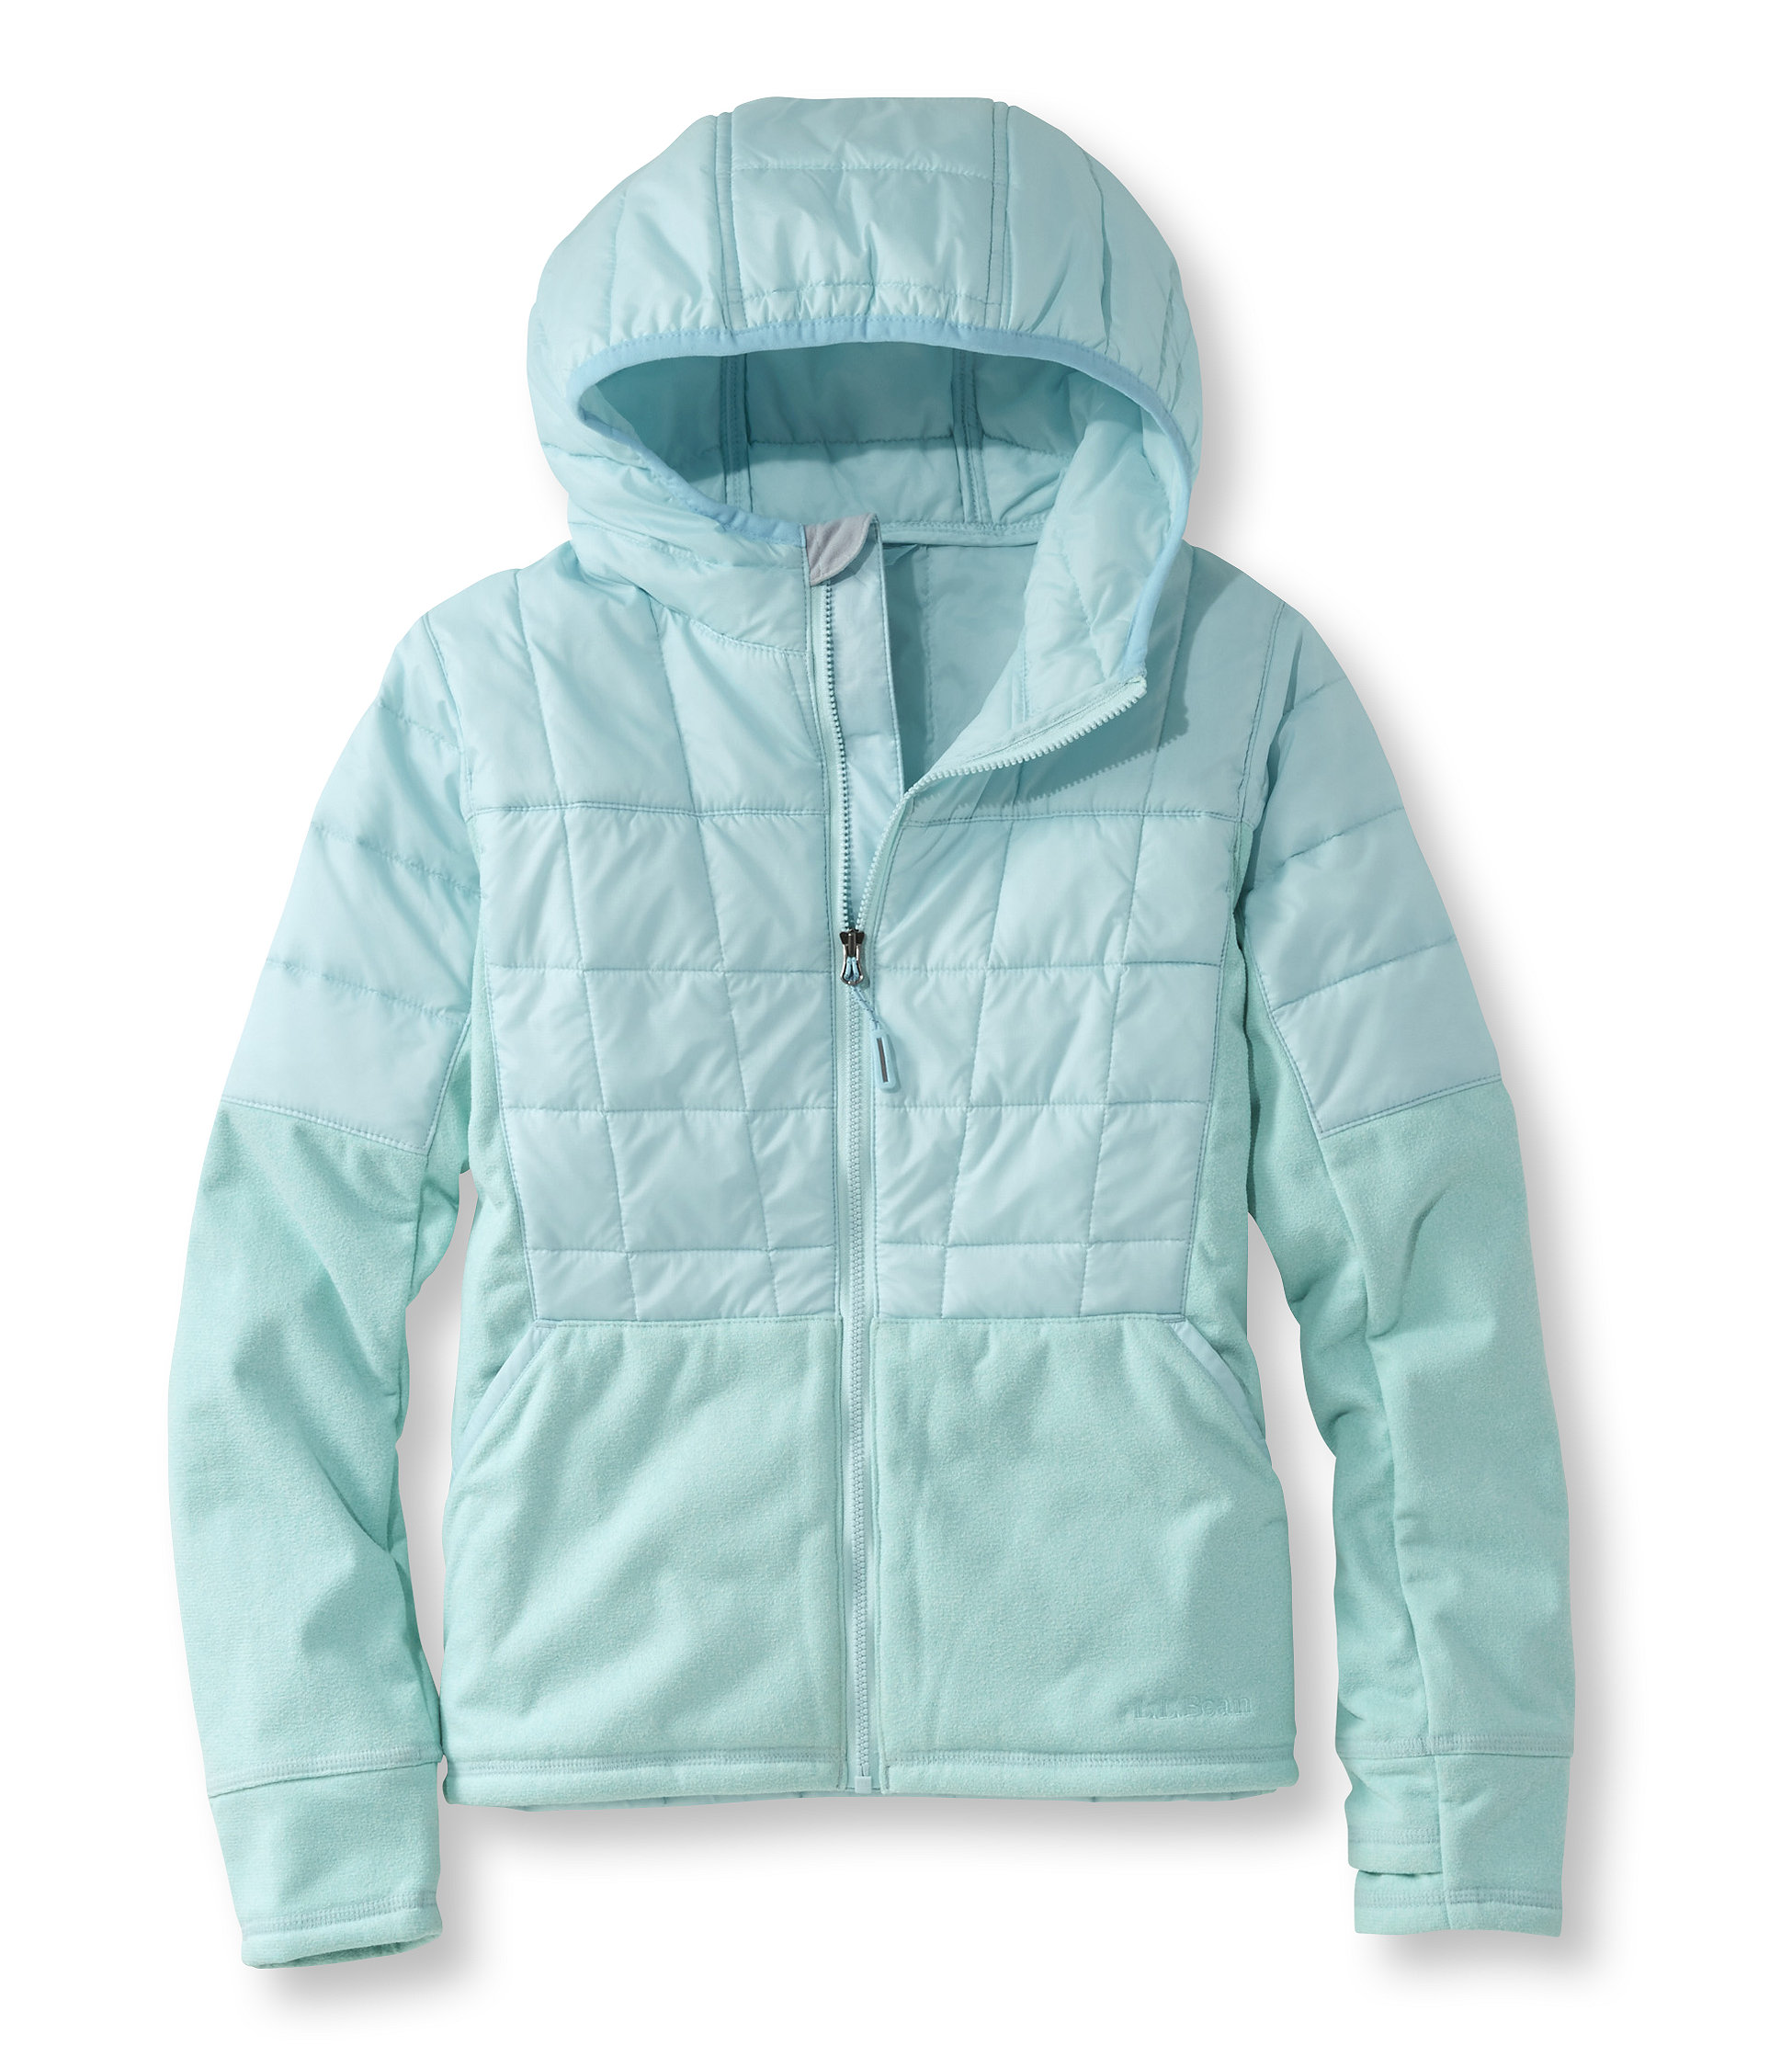 L.L.Bean Puff-N-Stuff Pro Jacket